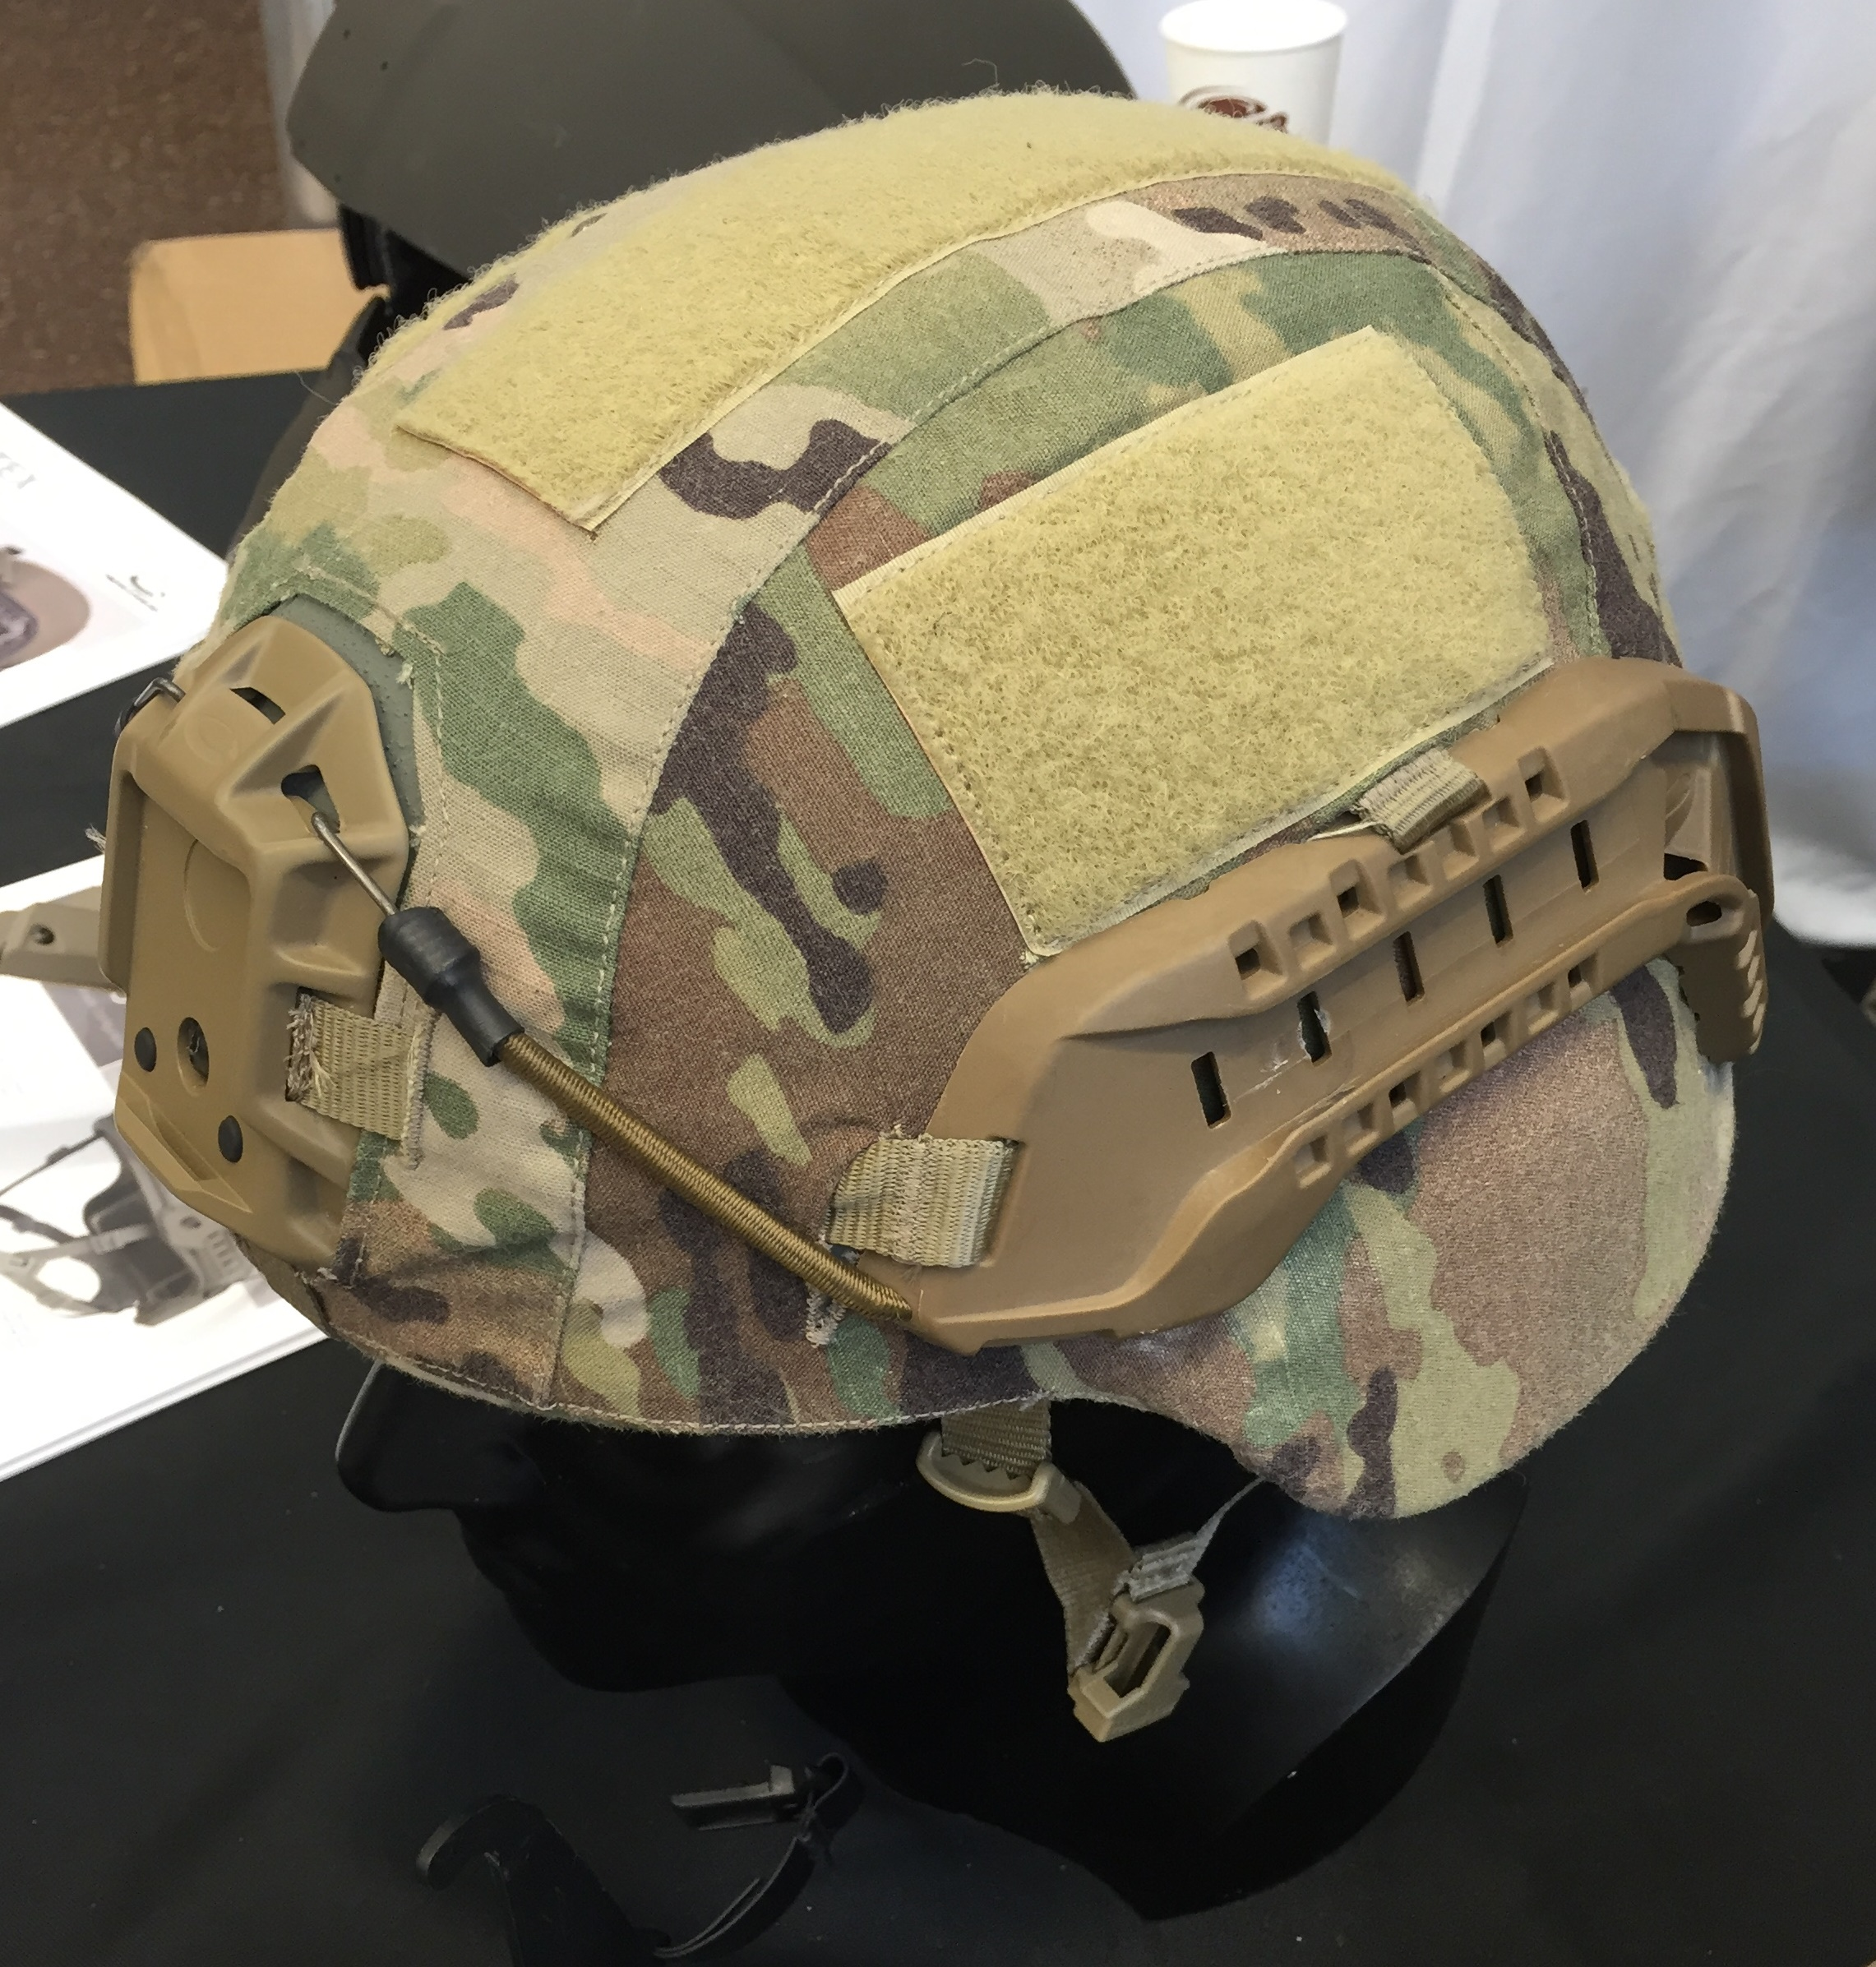 Gentex Mission Configuarble Helmet Cover (MCHC) Photo by Will Rodriguez